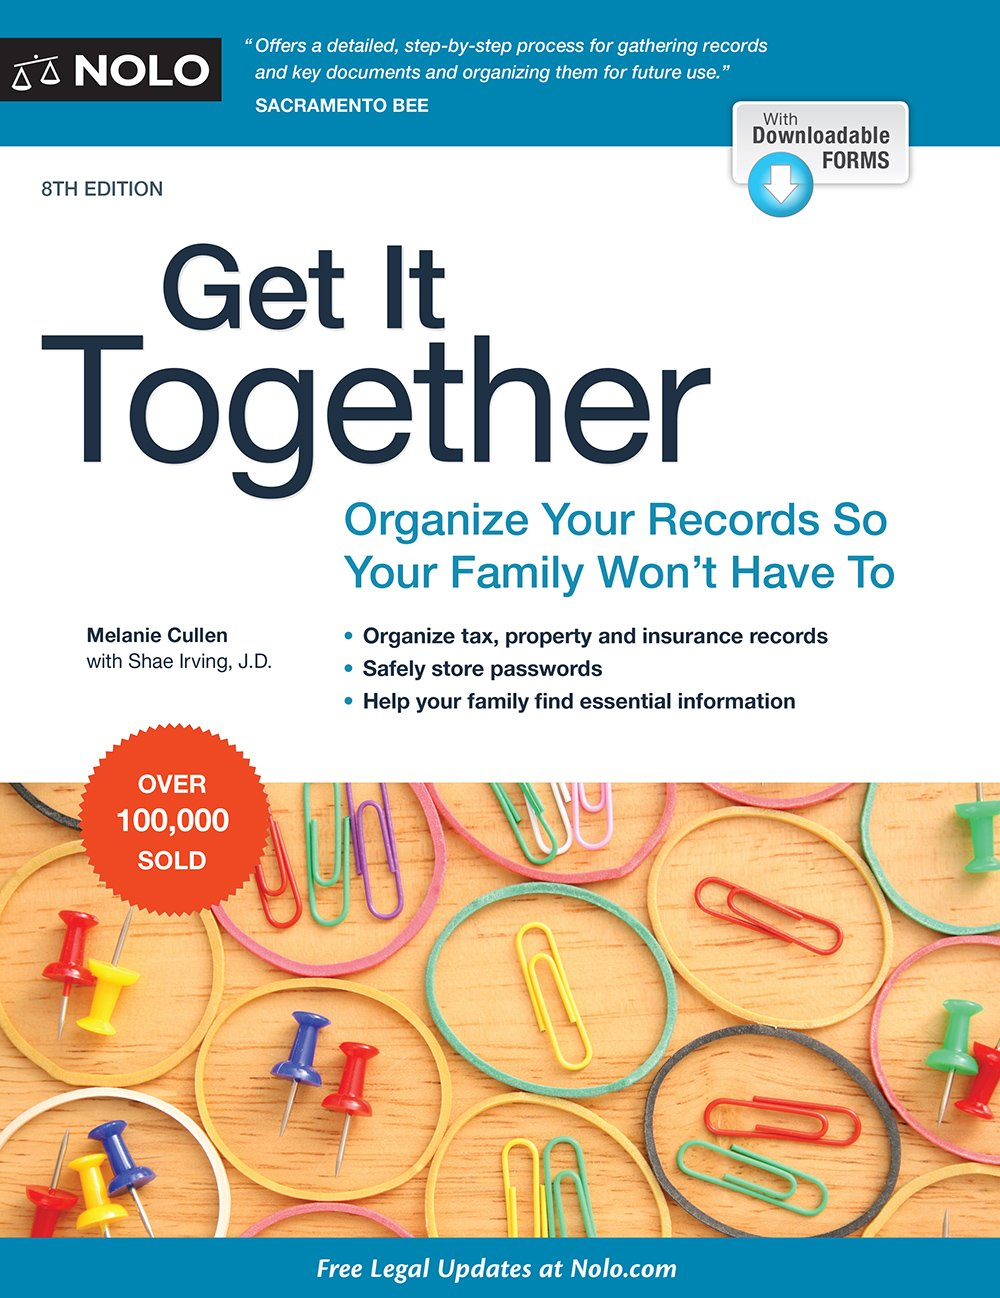 Get It Together: Organize Your Records So Your Family Won't Have To by NOLO